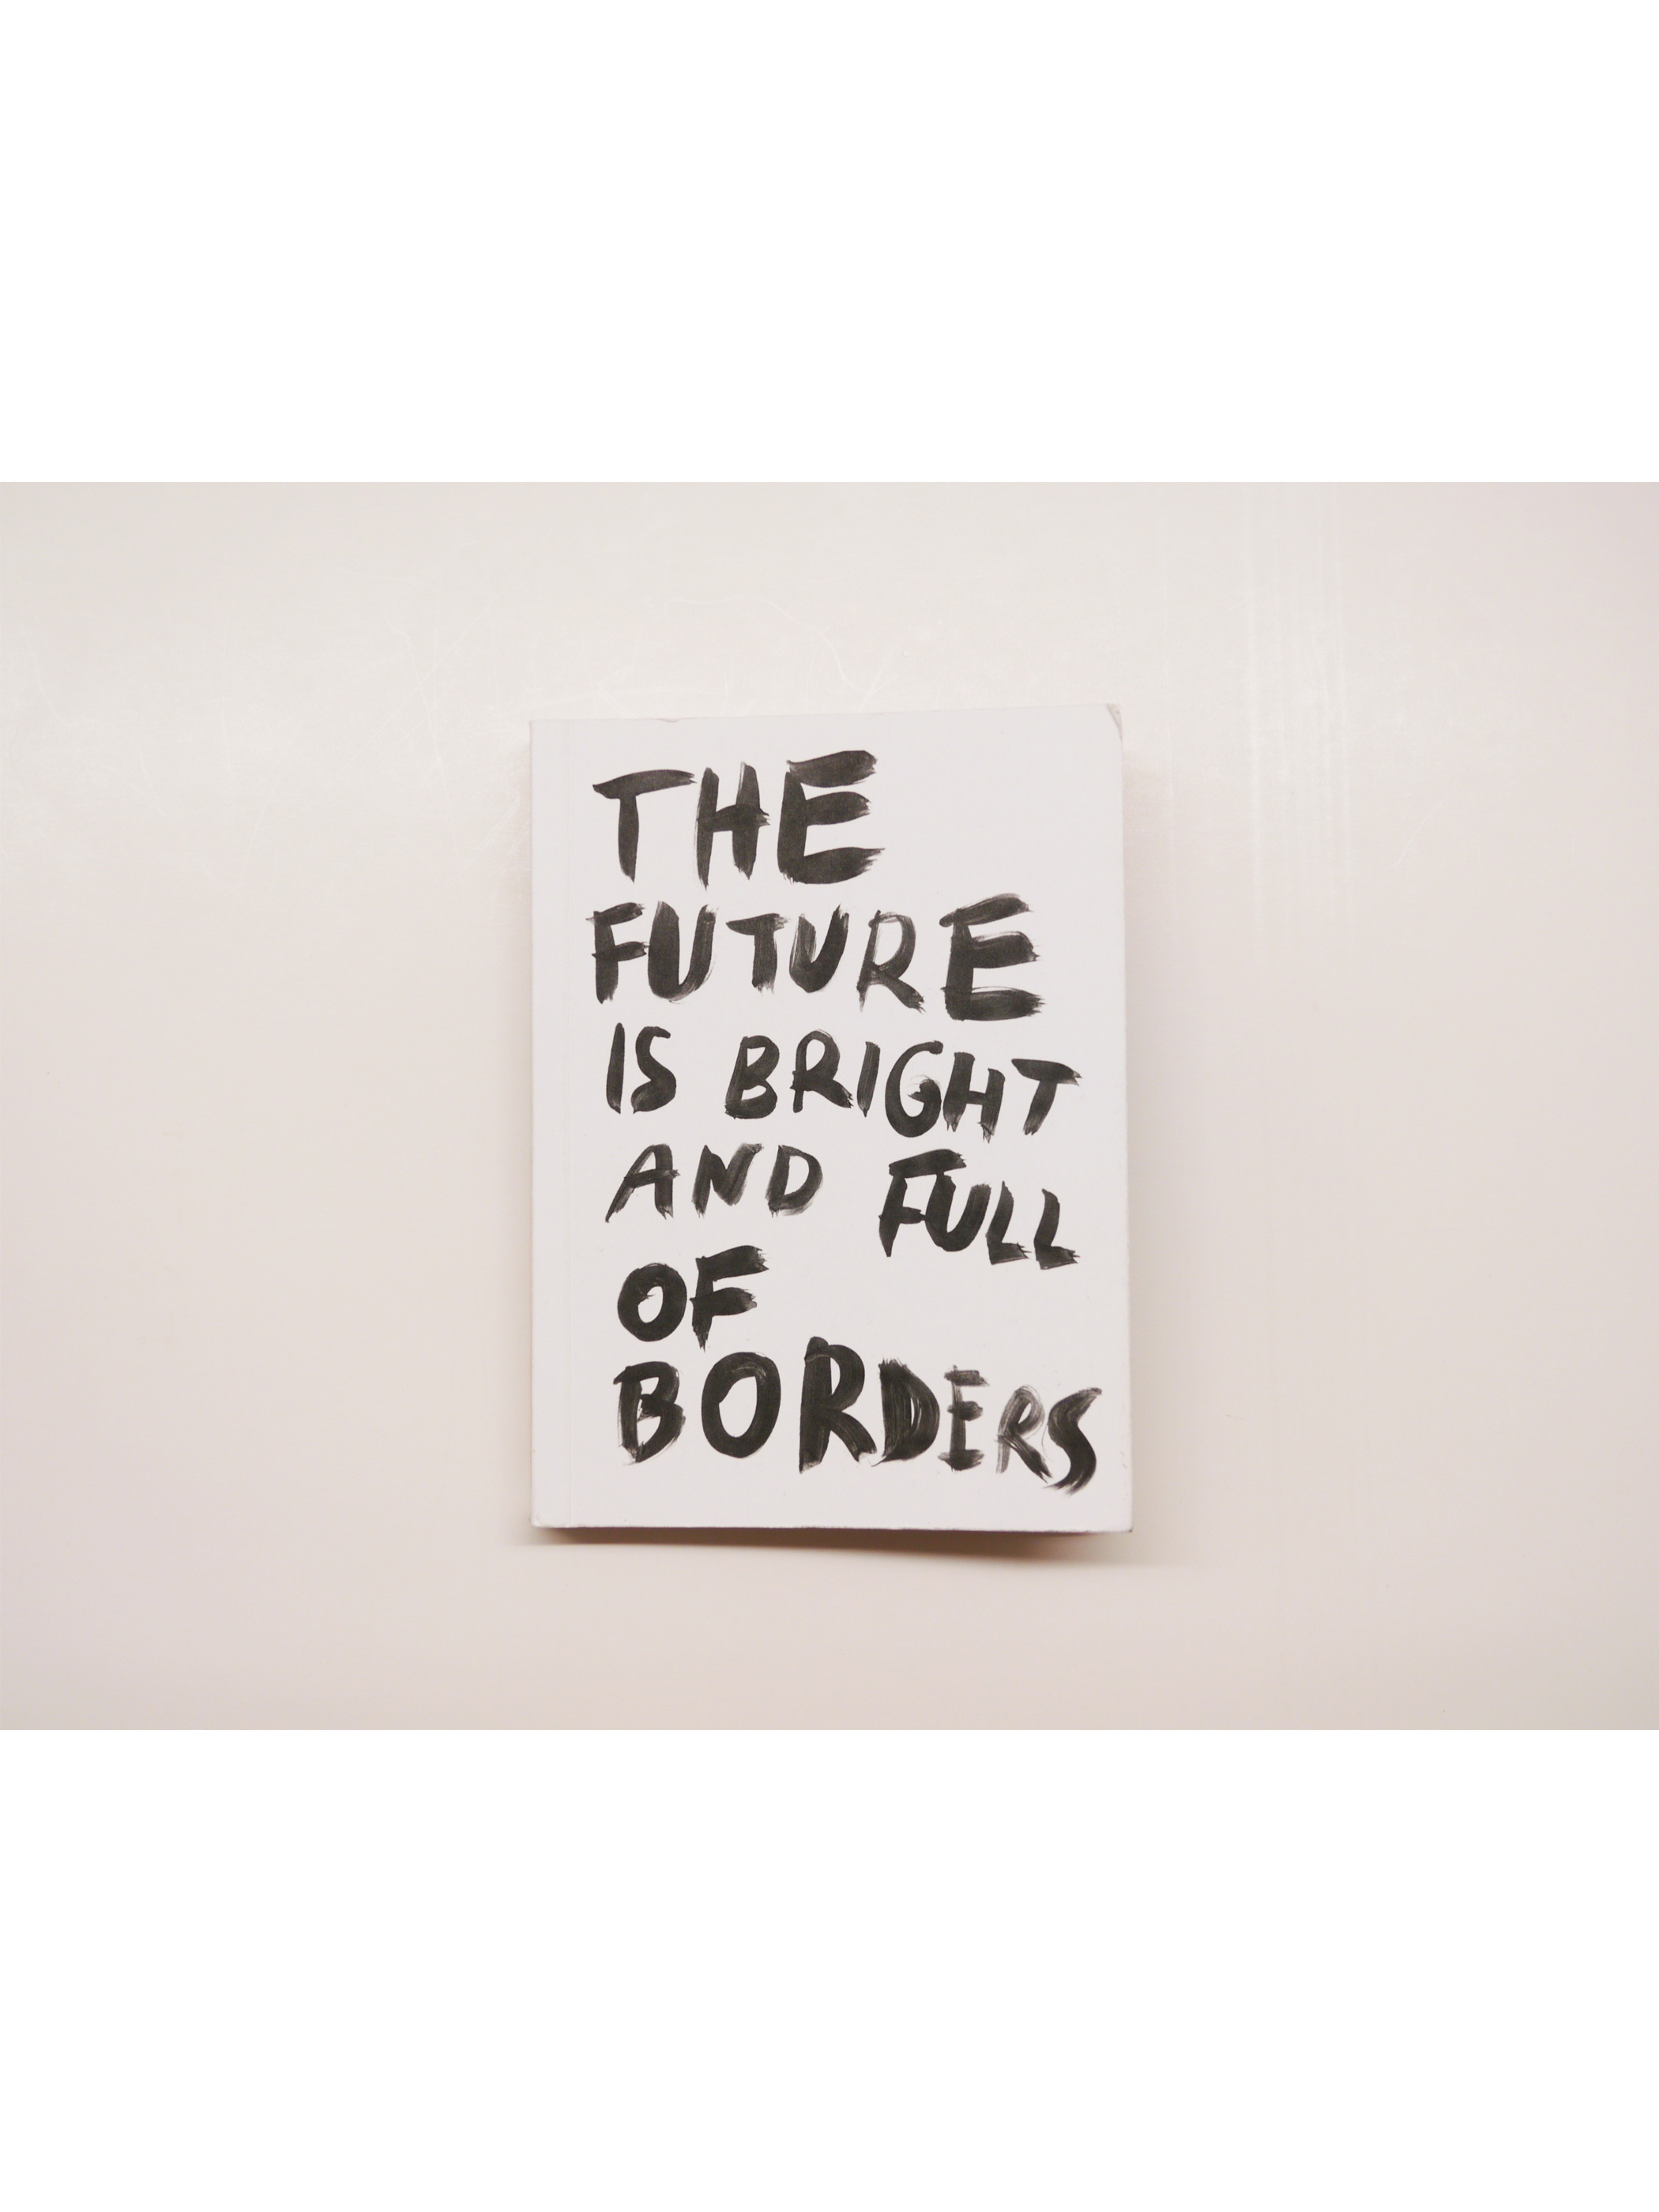 [ZINE]  The future is bright and full of borders